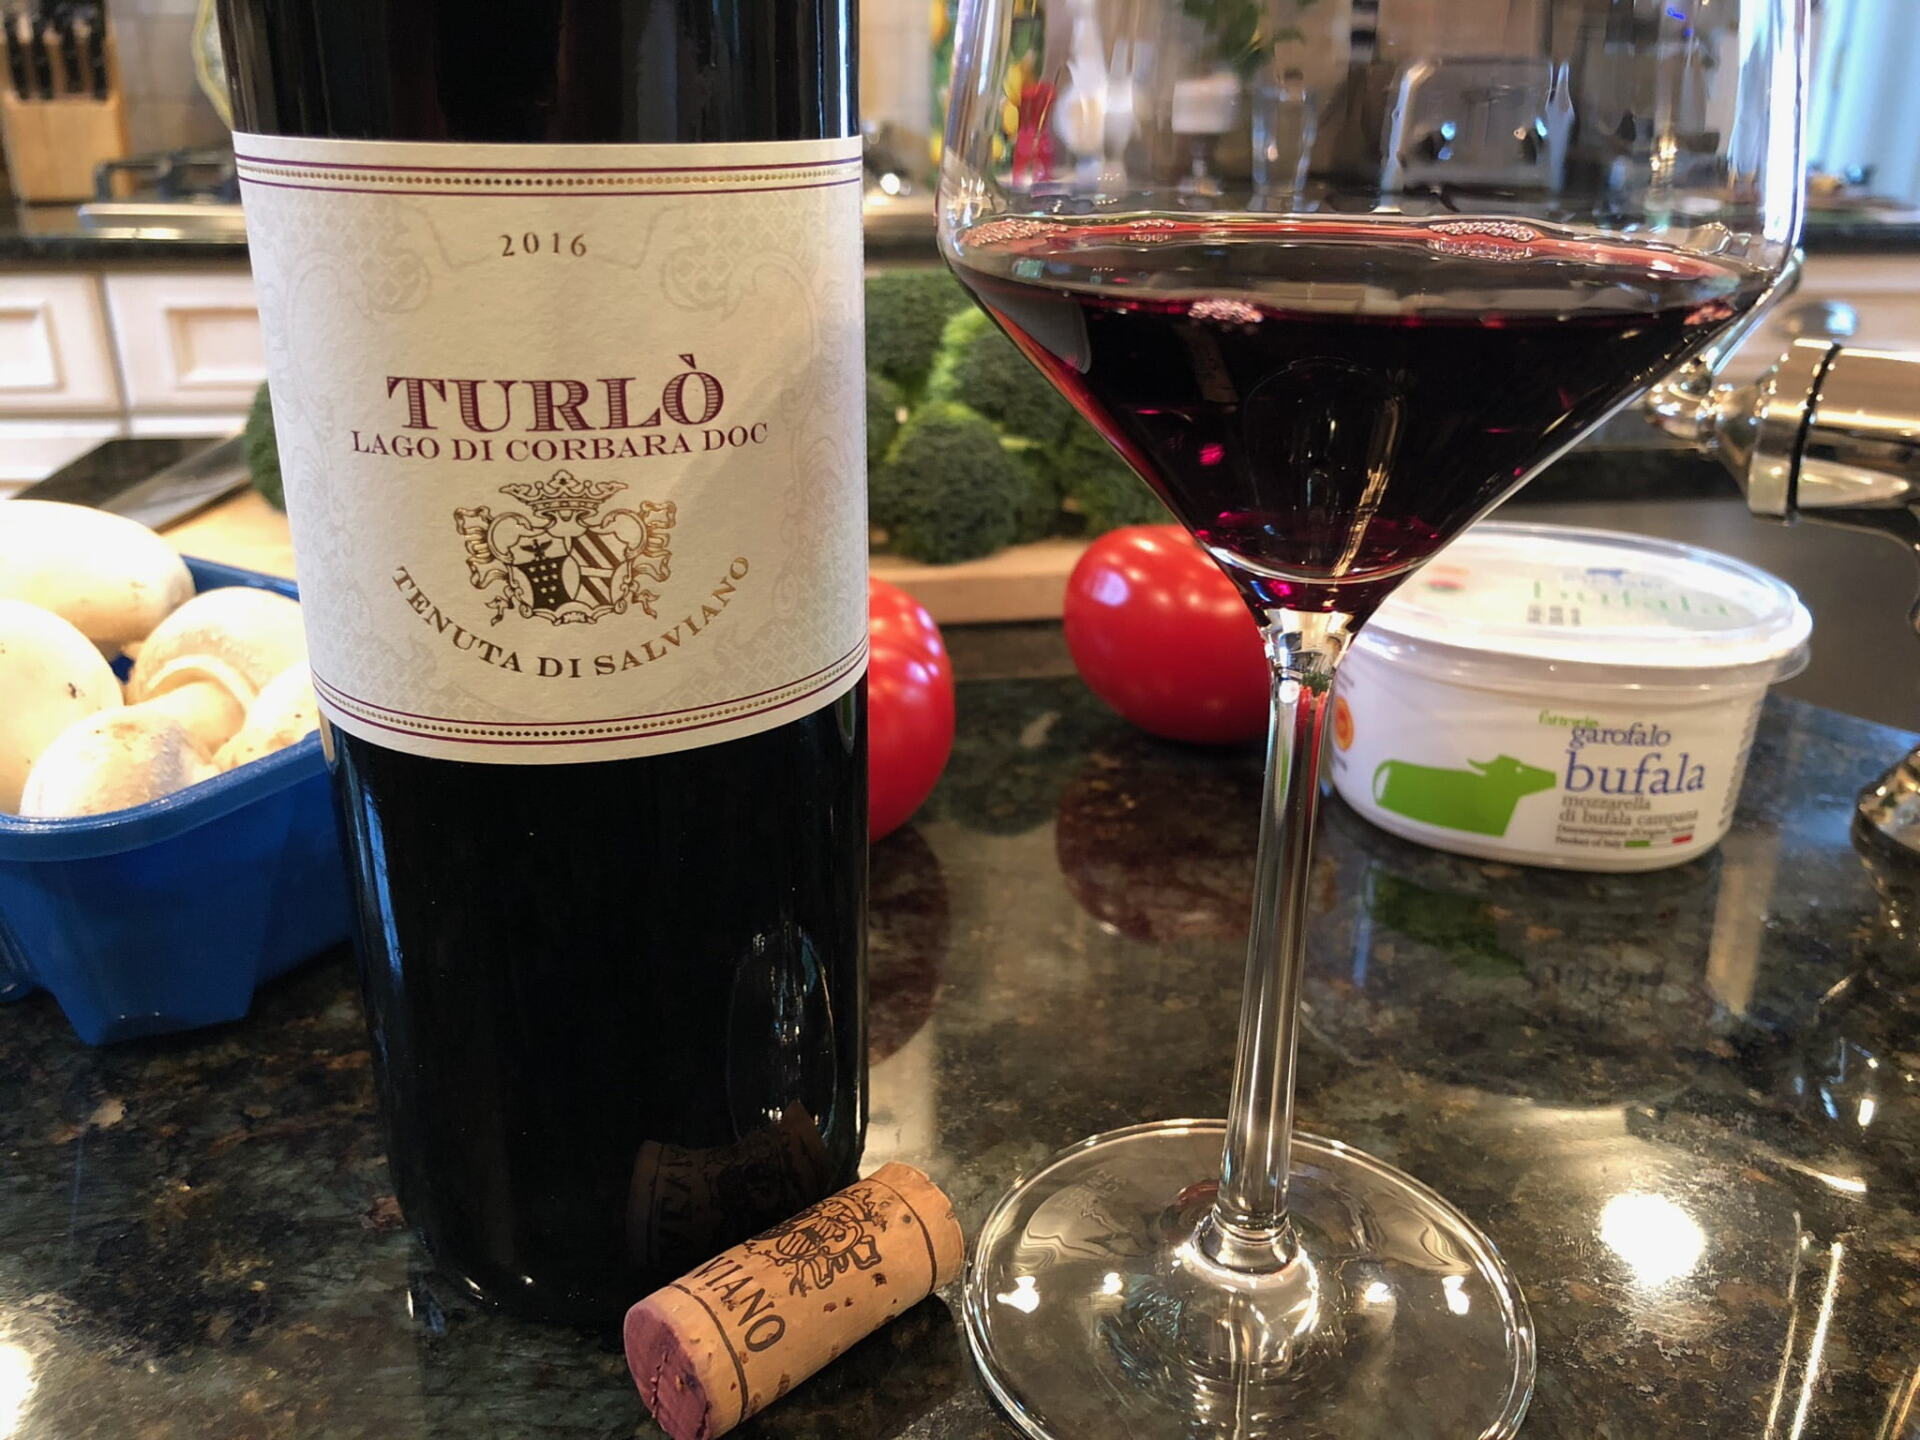 Turlo wine bottle and glass